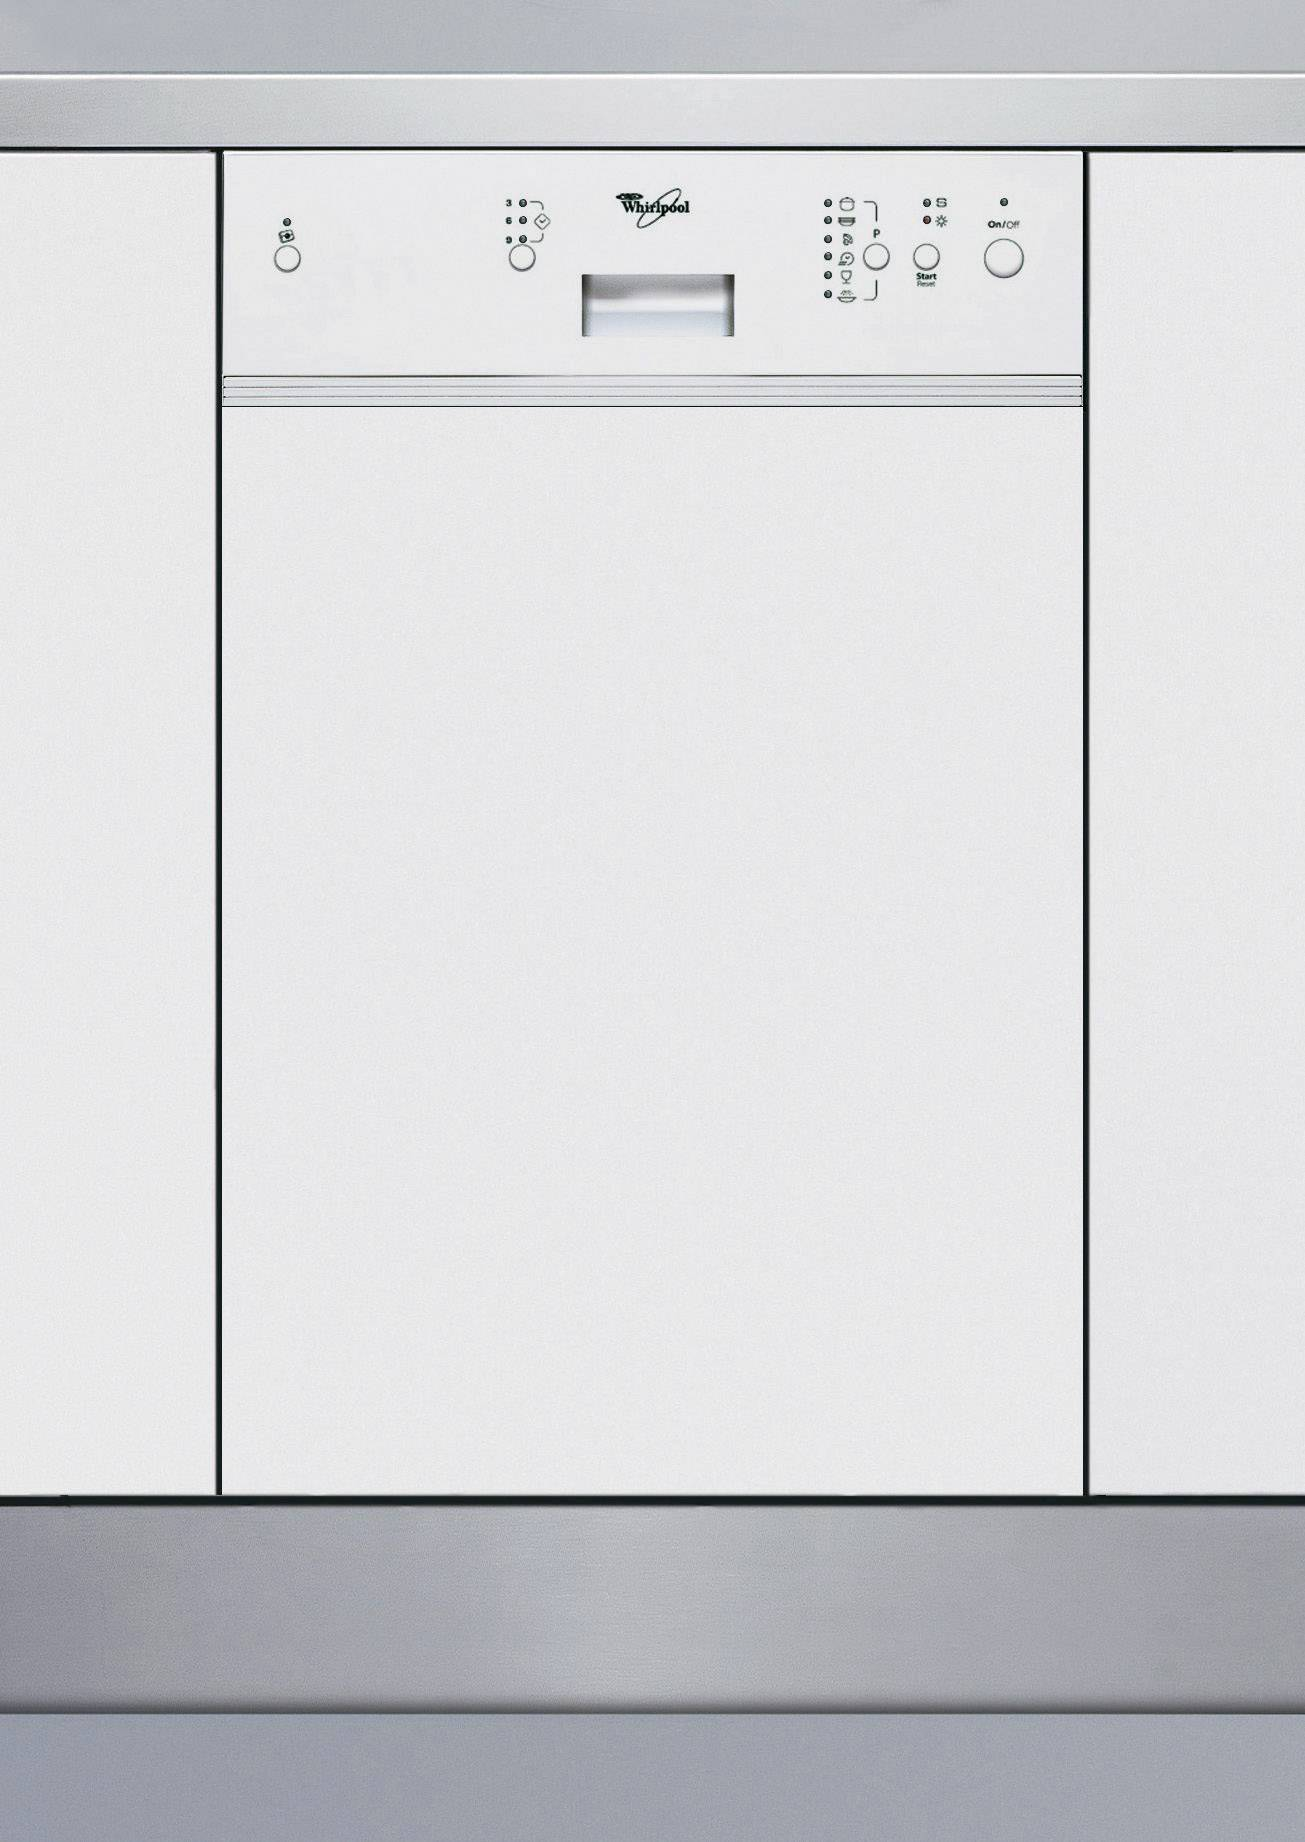 Einbau Geschirrspüler 45 Cm Einbau-geschirrspüler 45 Cm Whirlpool Adg 555 Wh A+